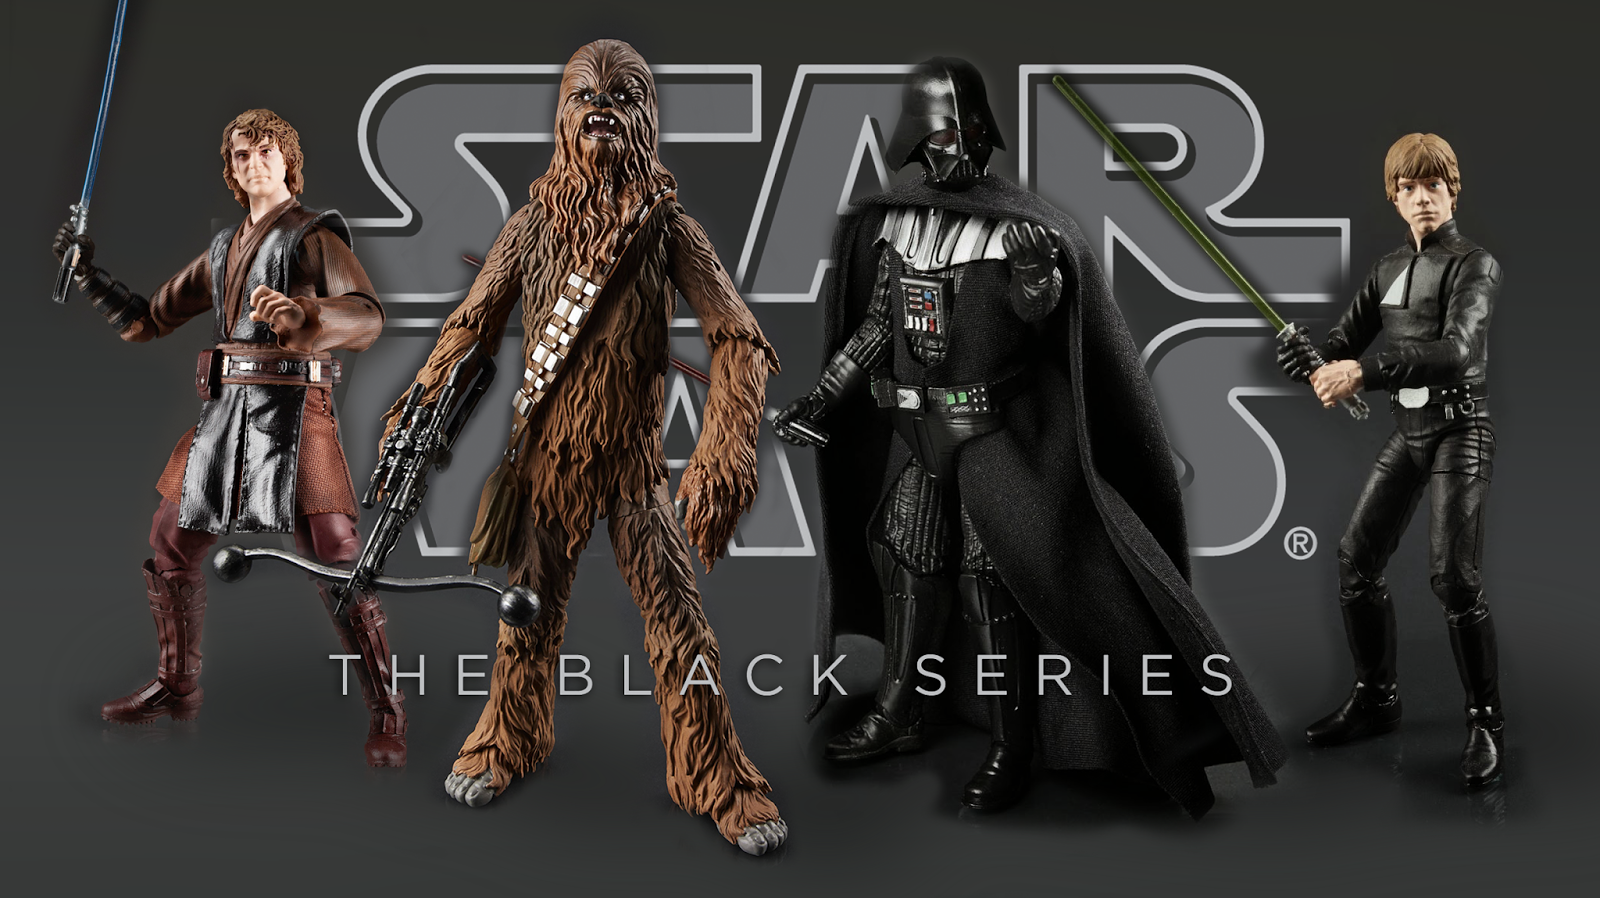 "The first-ever 6-inch scale Star Wars action figures! Bring home the ""next big thing"" in Star Wars with these Star Wars Black Series 6-Inch Action Figures. The sensational figures include accessories and are developed by Hasbro in conjunction with Lucasfilm and Gentle Giant to bring you the highest level of detail and authenticity at a price that can't be beat. Start your collection here and collect them all!  Luke Skywalker han Solo Stormtrooper Darth Maul r2-d2 Bespin Luke Boba Fett Greedo Slave Leia darth vader anakin jedi luke obi wan kenobi sandtrooper Han Solo Carbonite SDCC Exclusive Toyfair 2014 2013 2015 Episode VII Reveal Sneak PeekCustom Action Figures GeekSummit $19.99"